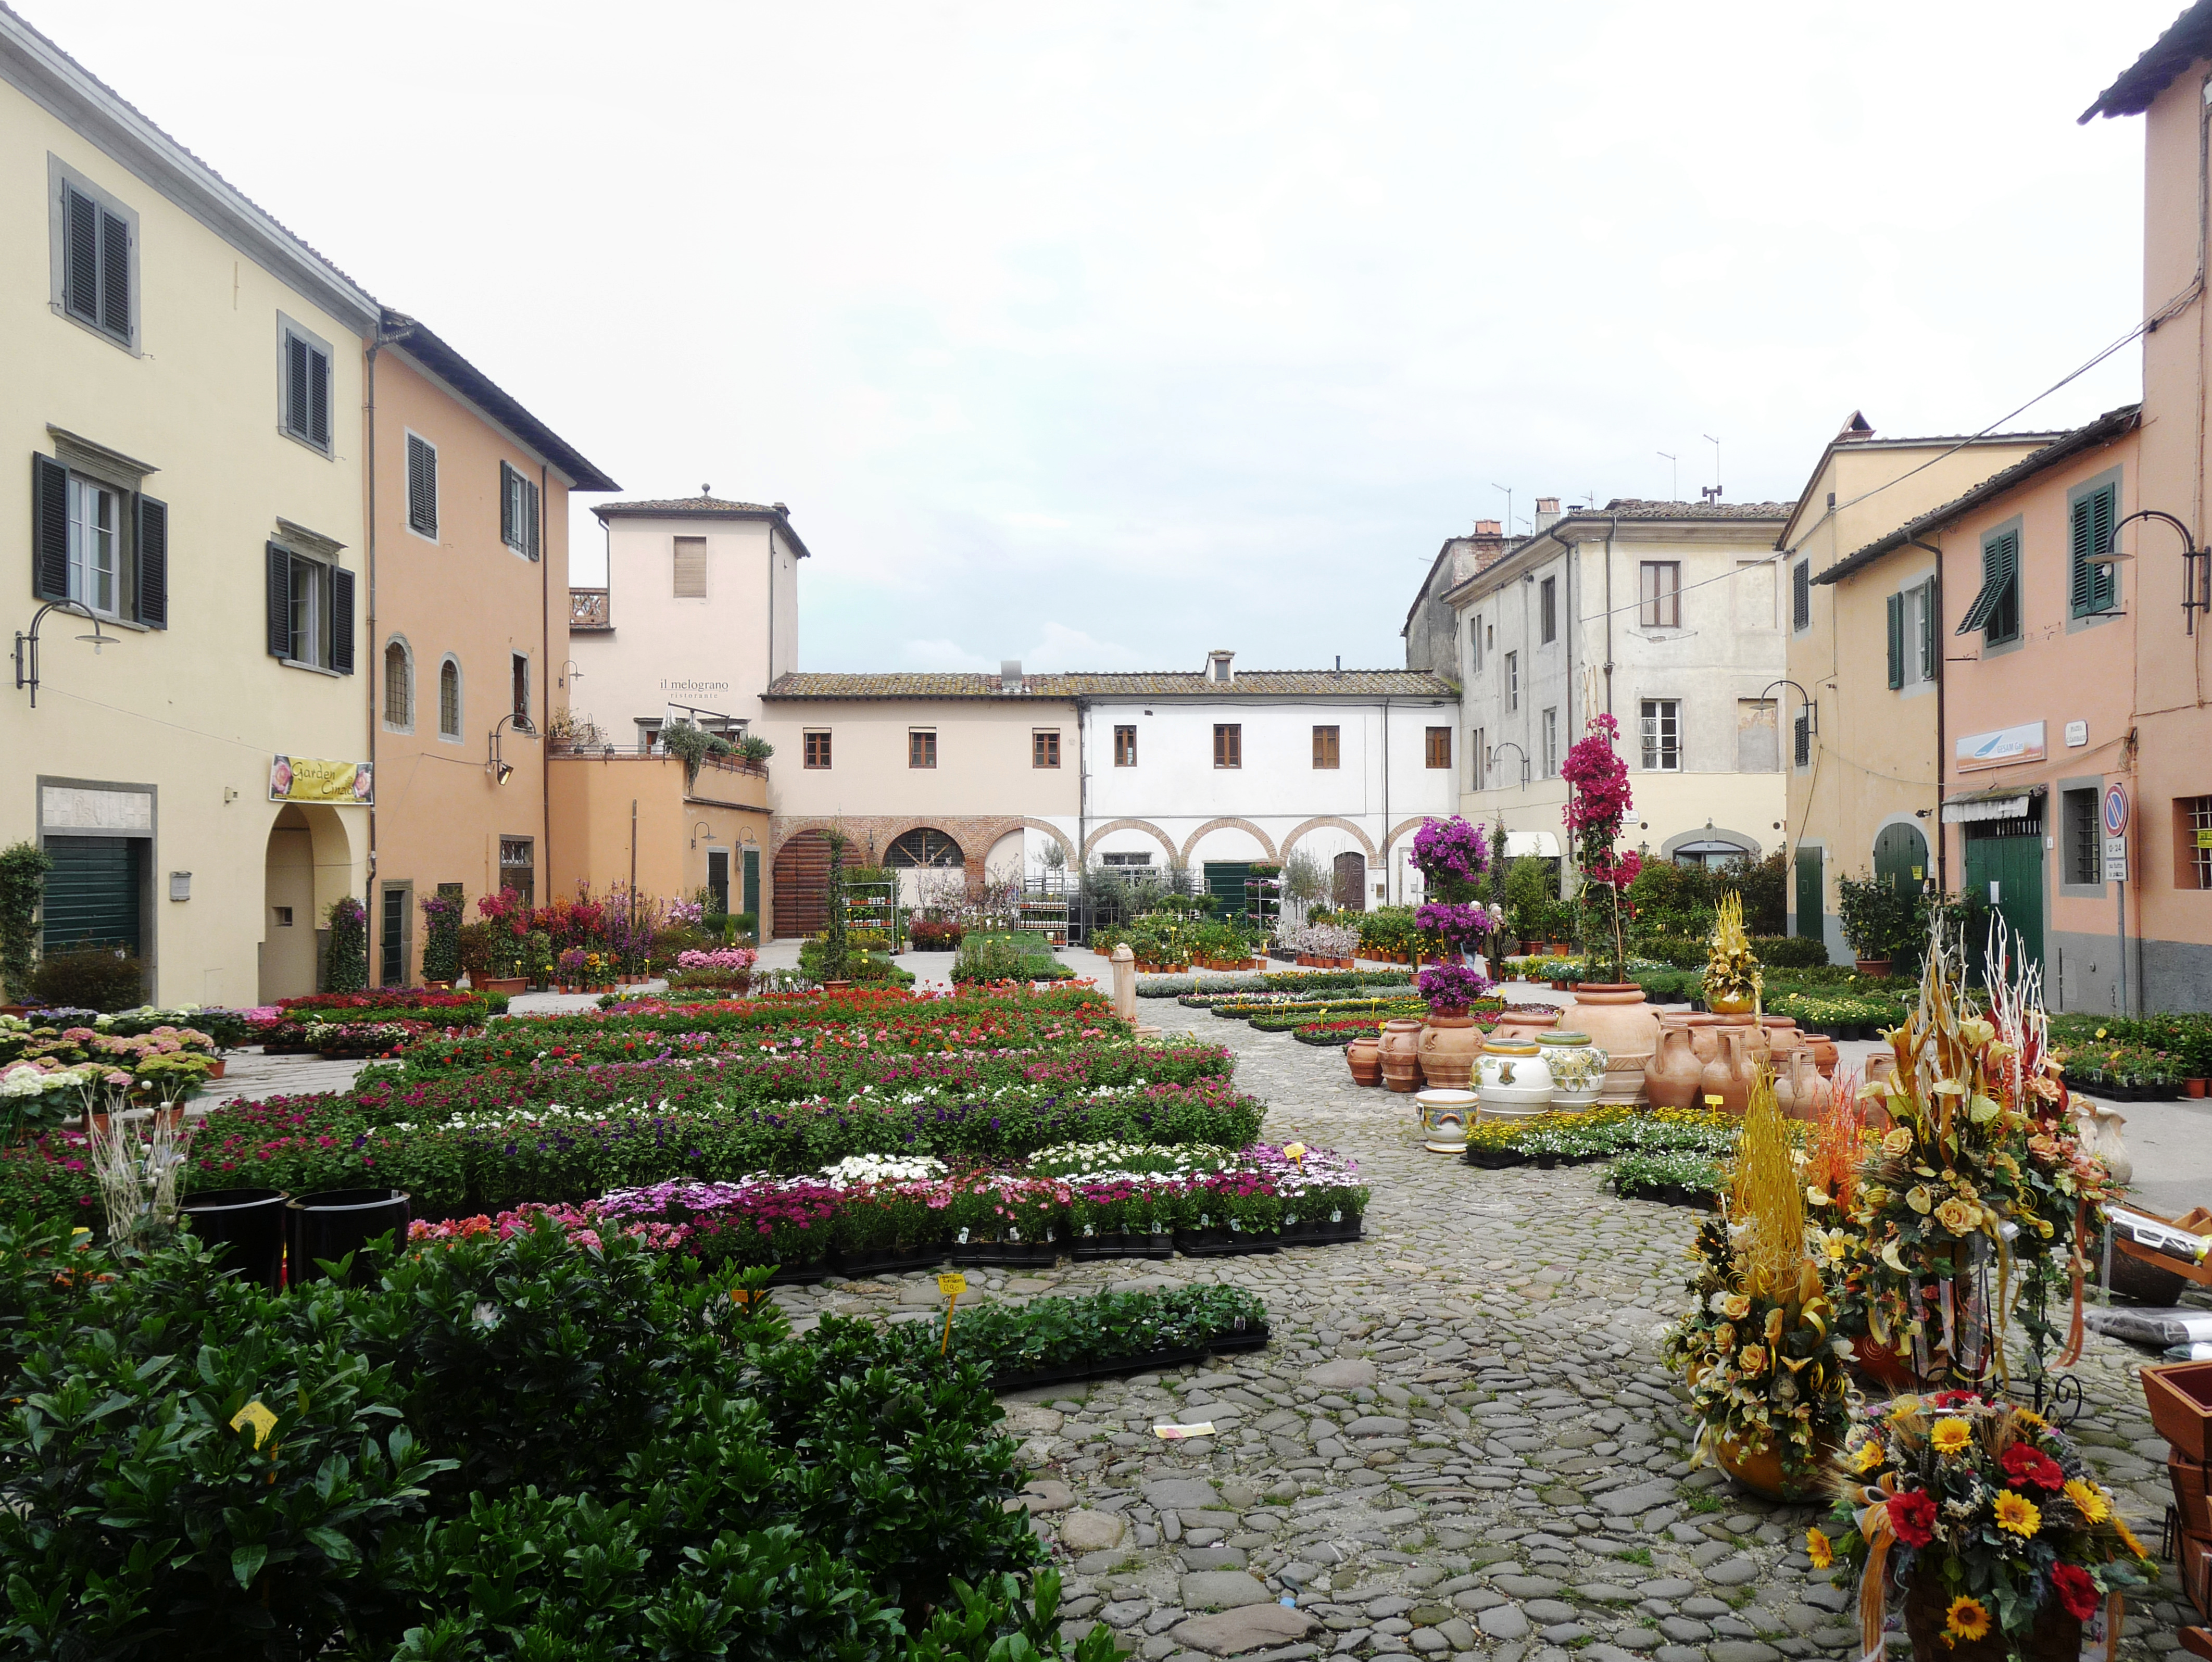 Altopascio Italy  City pictures : Piazza Garibaldi, Altopascio Wikimedia Commons